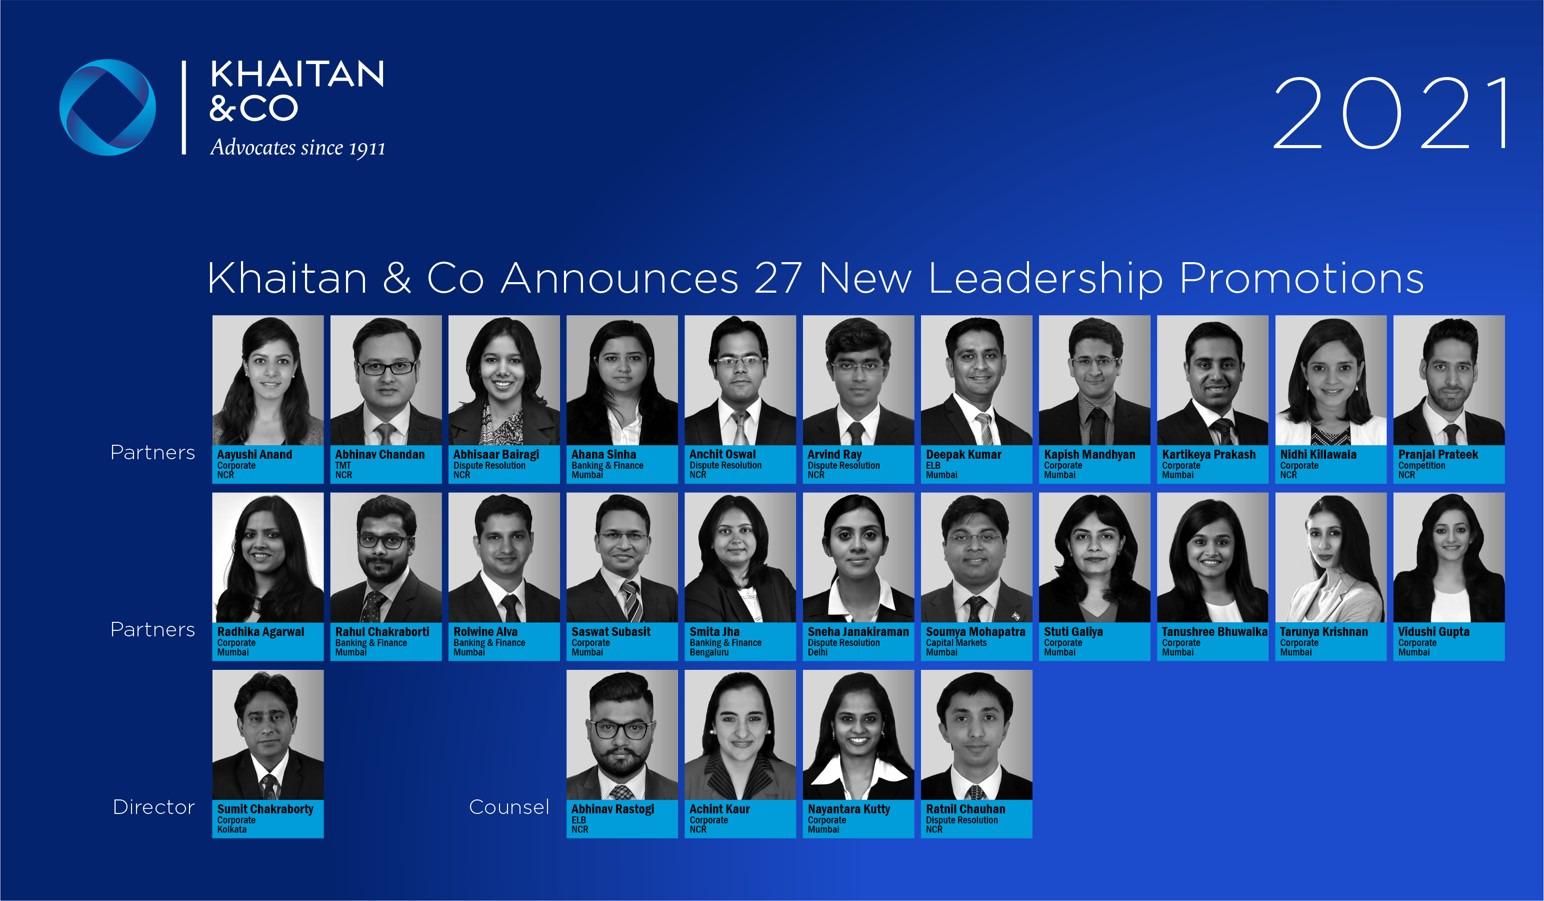 Khaitan & Co Announces 27 New Leadership Promotions